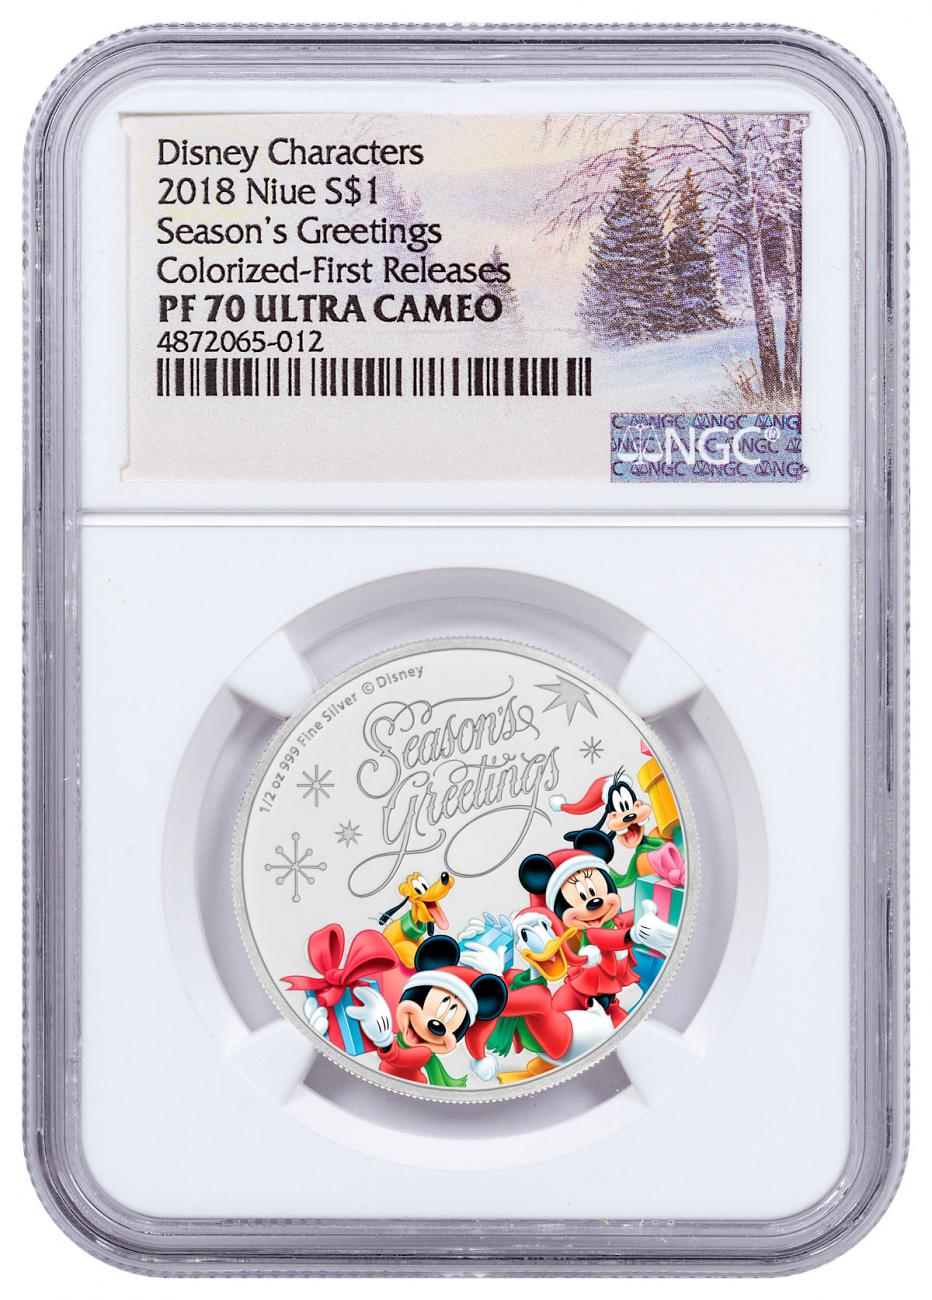 2018 Niue Disney Season's Greetings 1/2 oz Silver Colorized Proof $1 Coin NGC PF70 UC FR Holiday Label